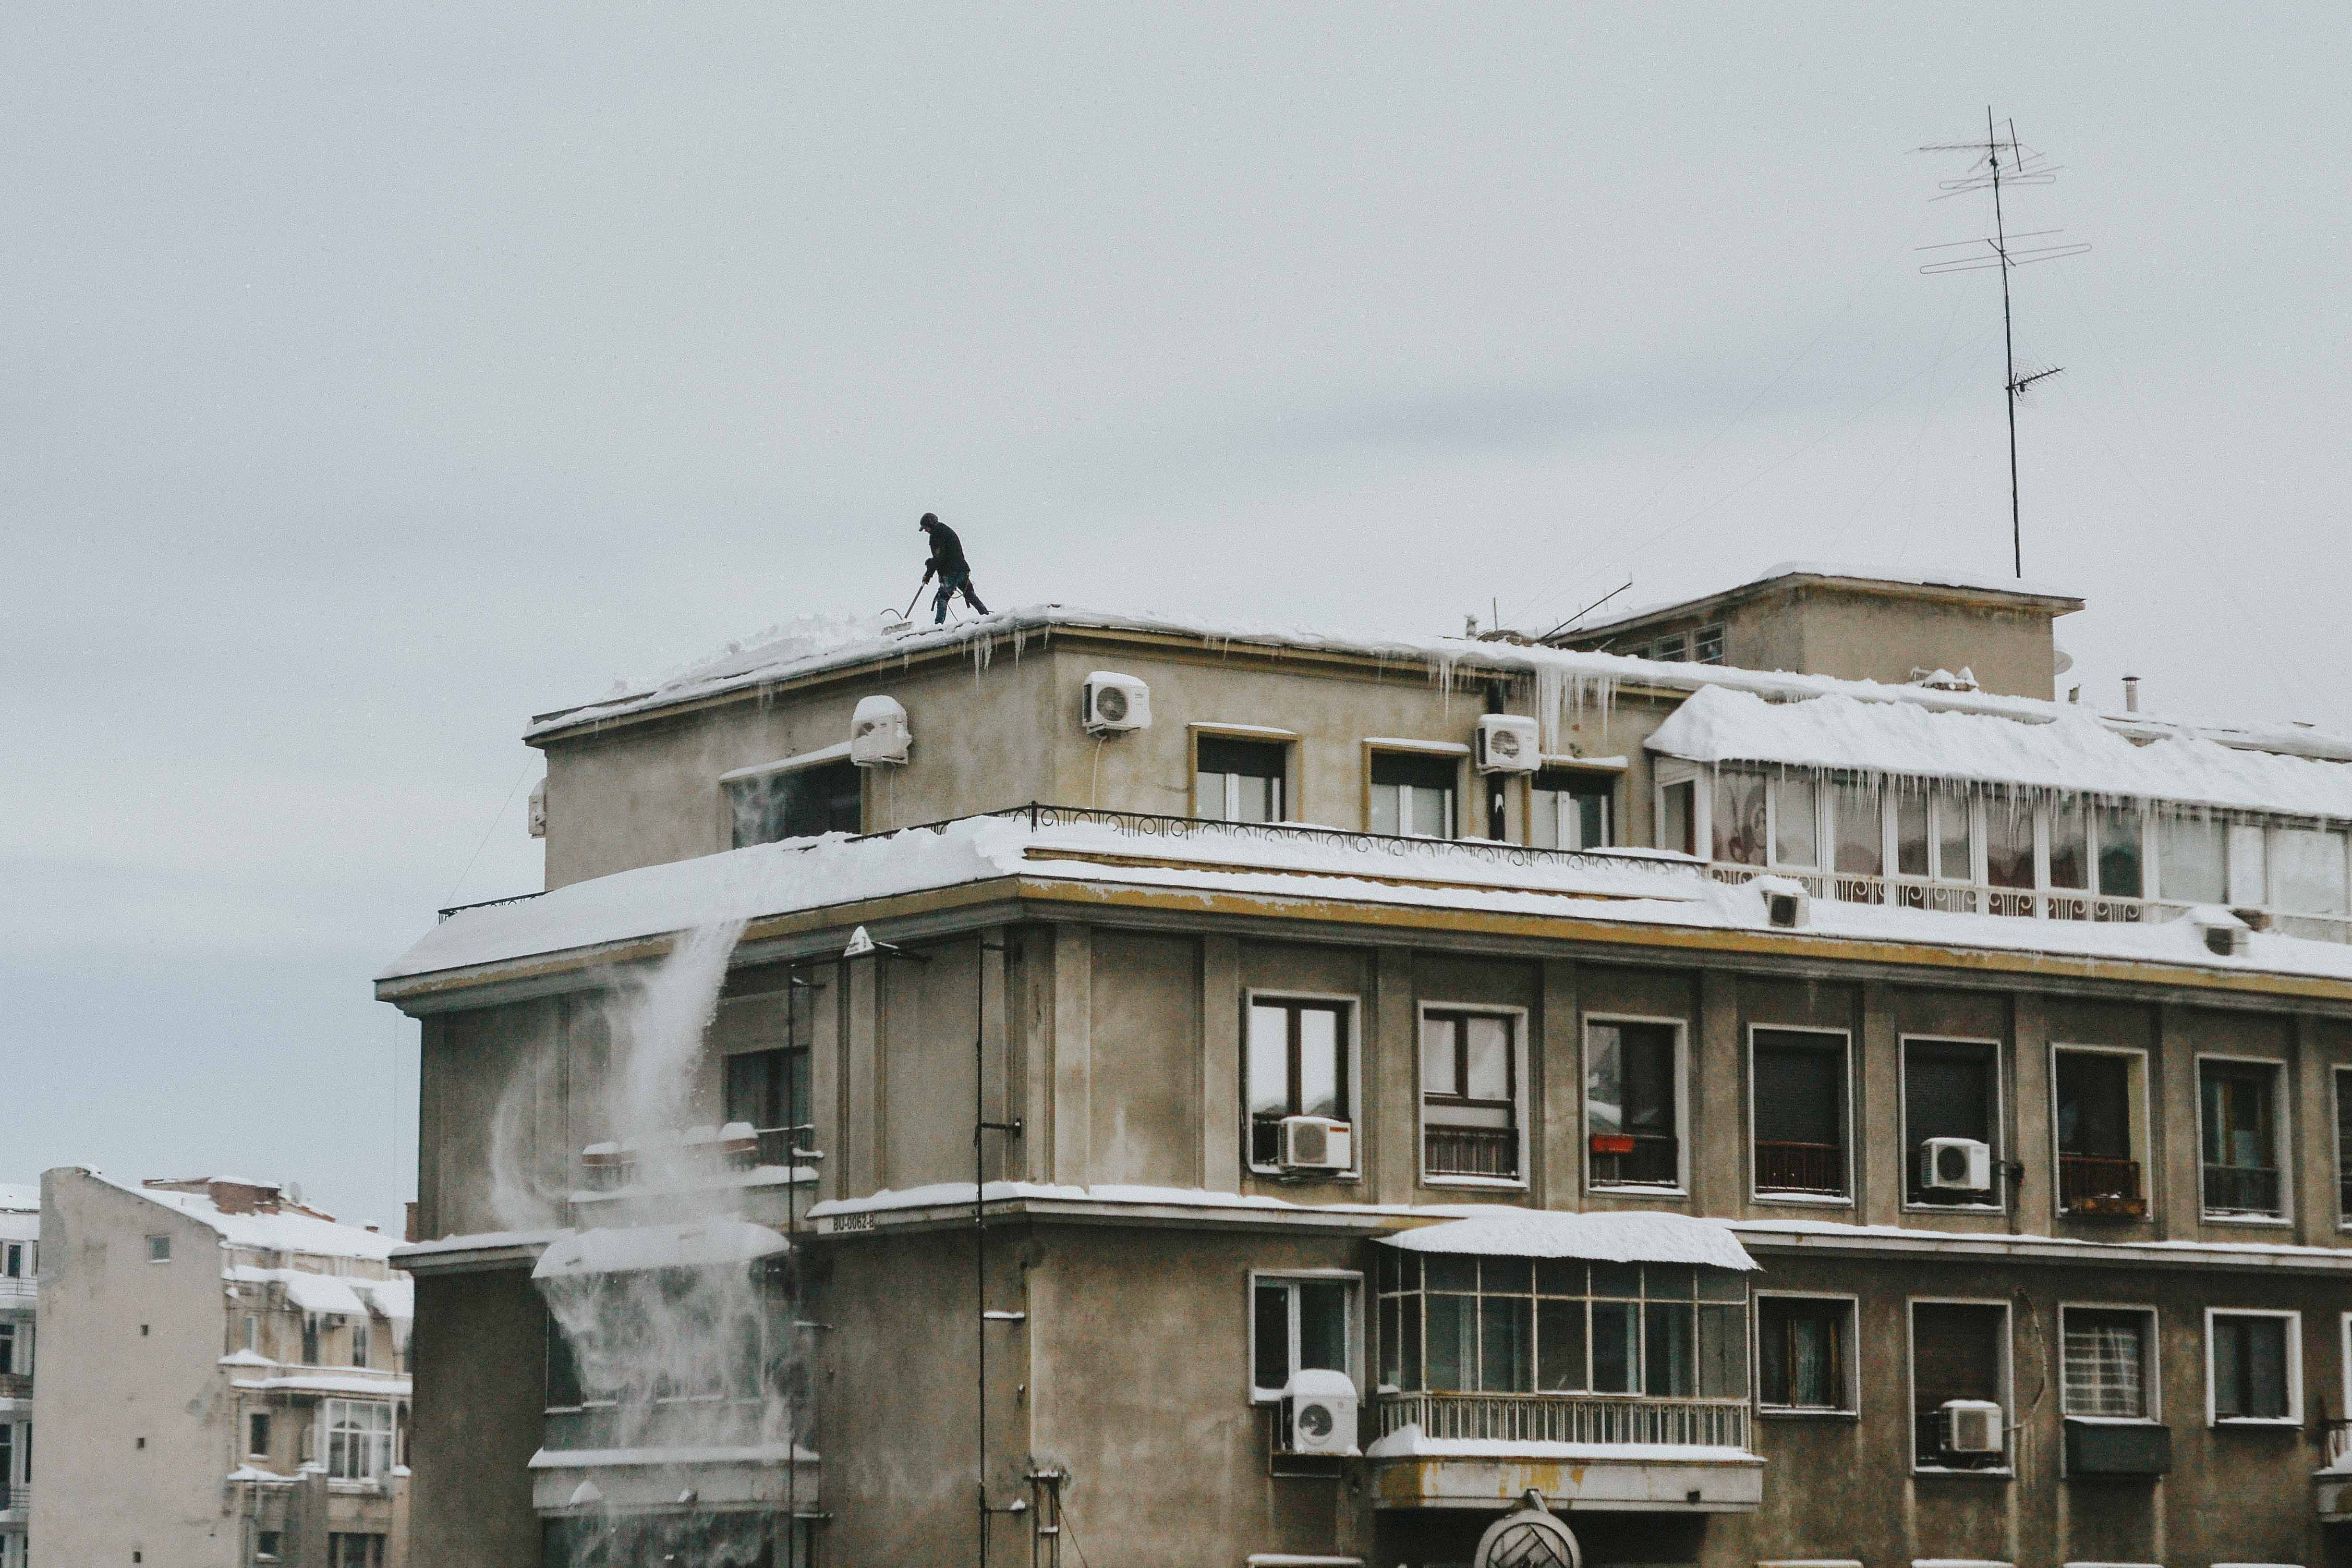 A person sweeping snow off the roof of a residential building